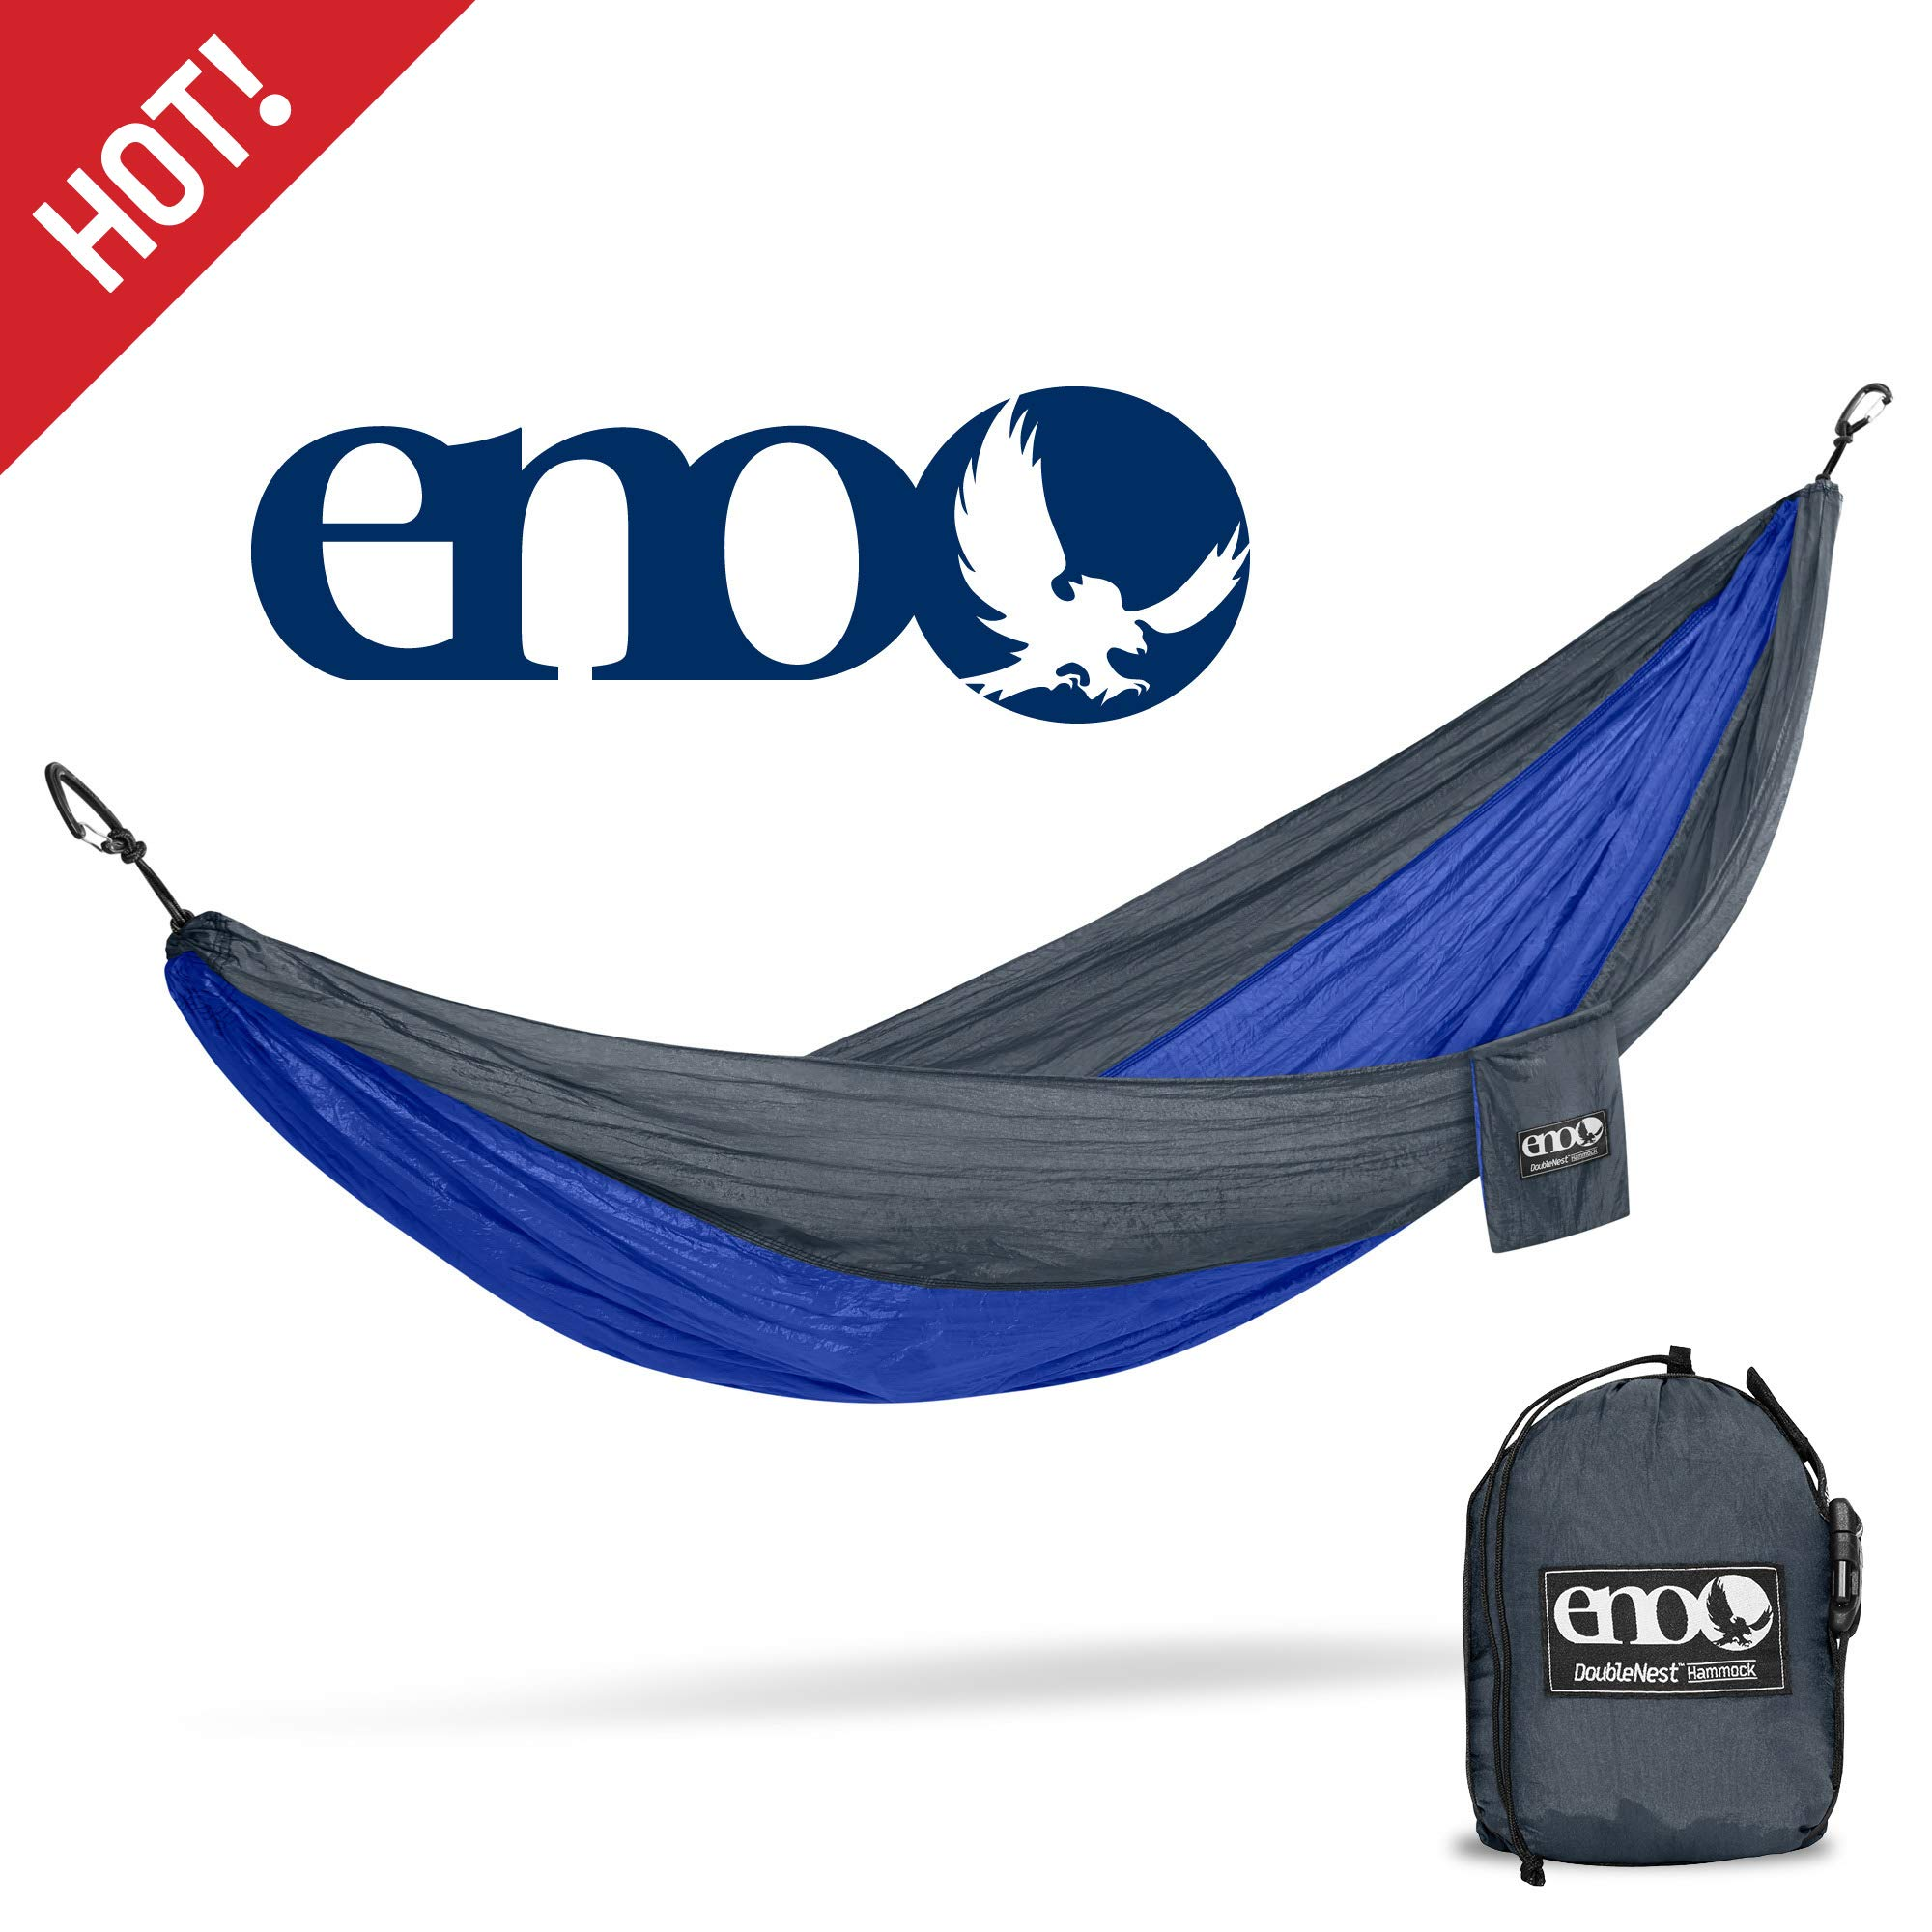 ENO - Eagles Nest Outfitters DoubleNest Lightweight Camping Hammock, 1 to 2 Person, National Park Foundation Special Edition by ENO